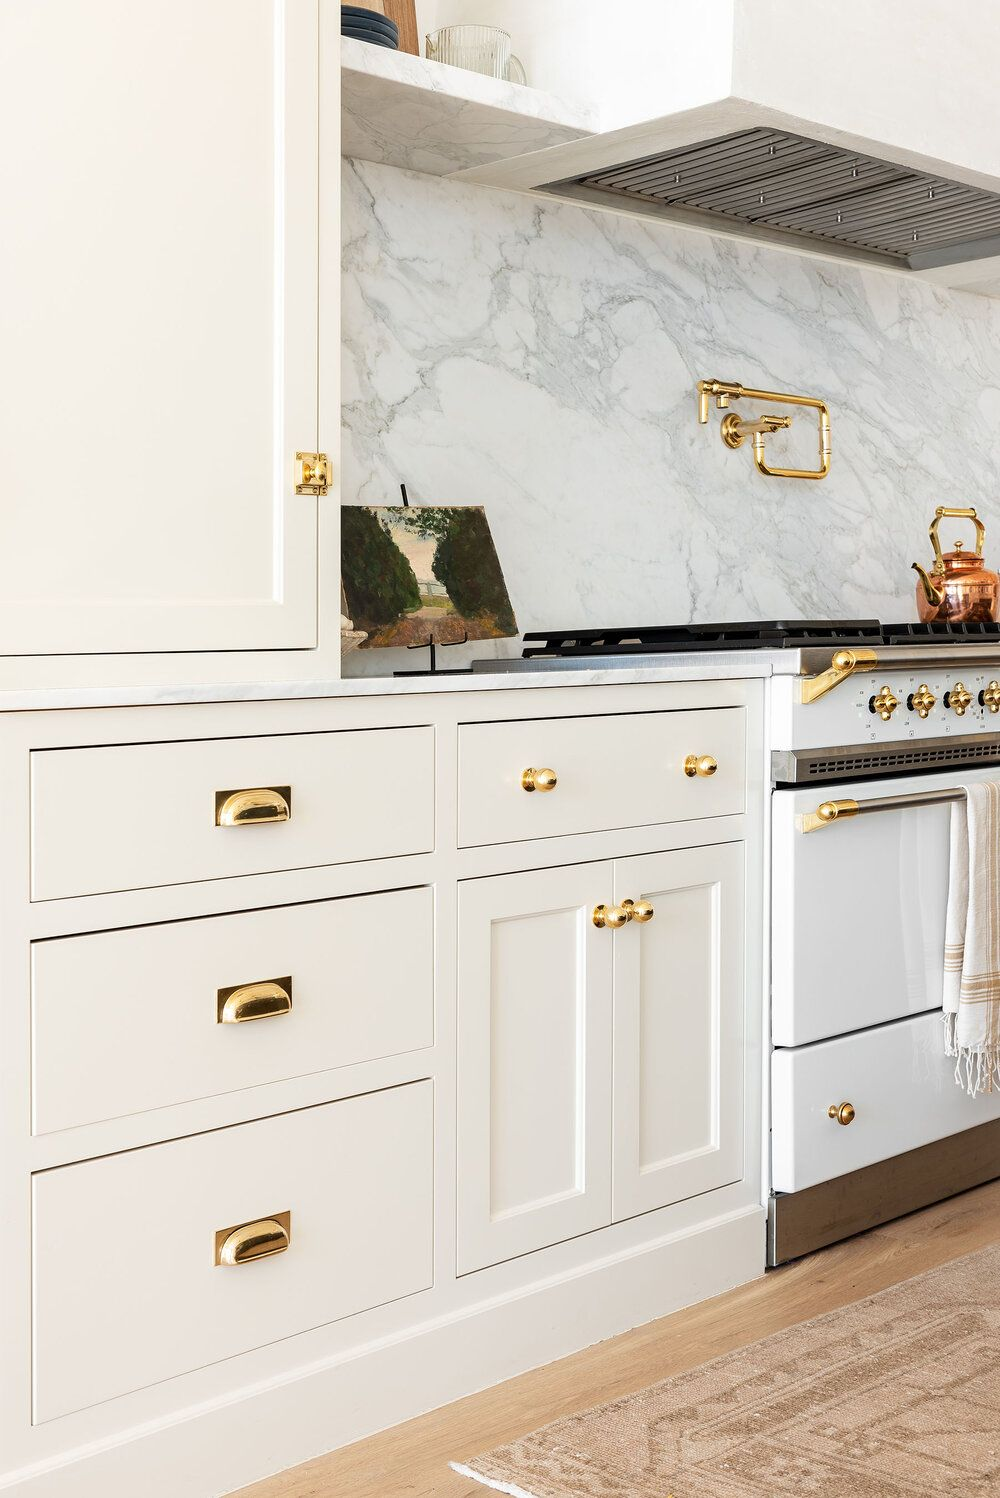 The Mcgee Home Kitchen Tour Studio Mcgee In 2020 Cabinet Hardware Placement Home Kitchens Studio Mcgee